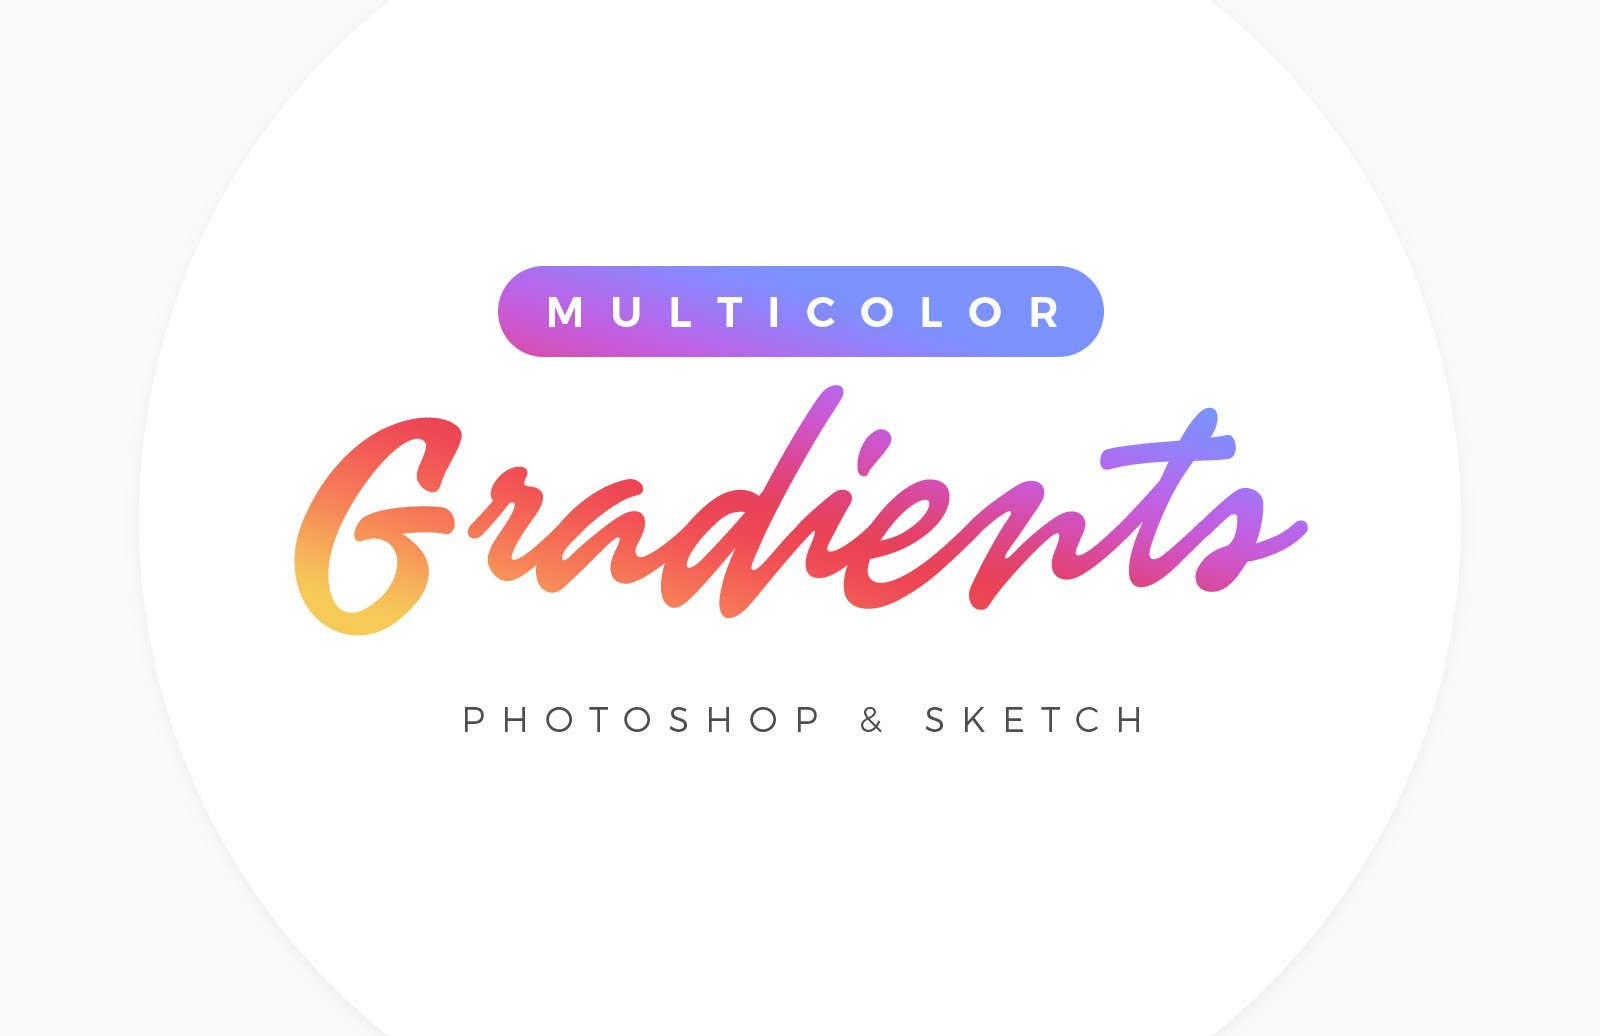 Cool Multicolor Gradients for Photoshop & Sketch